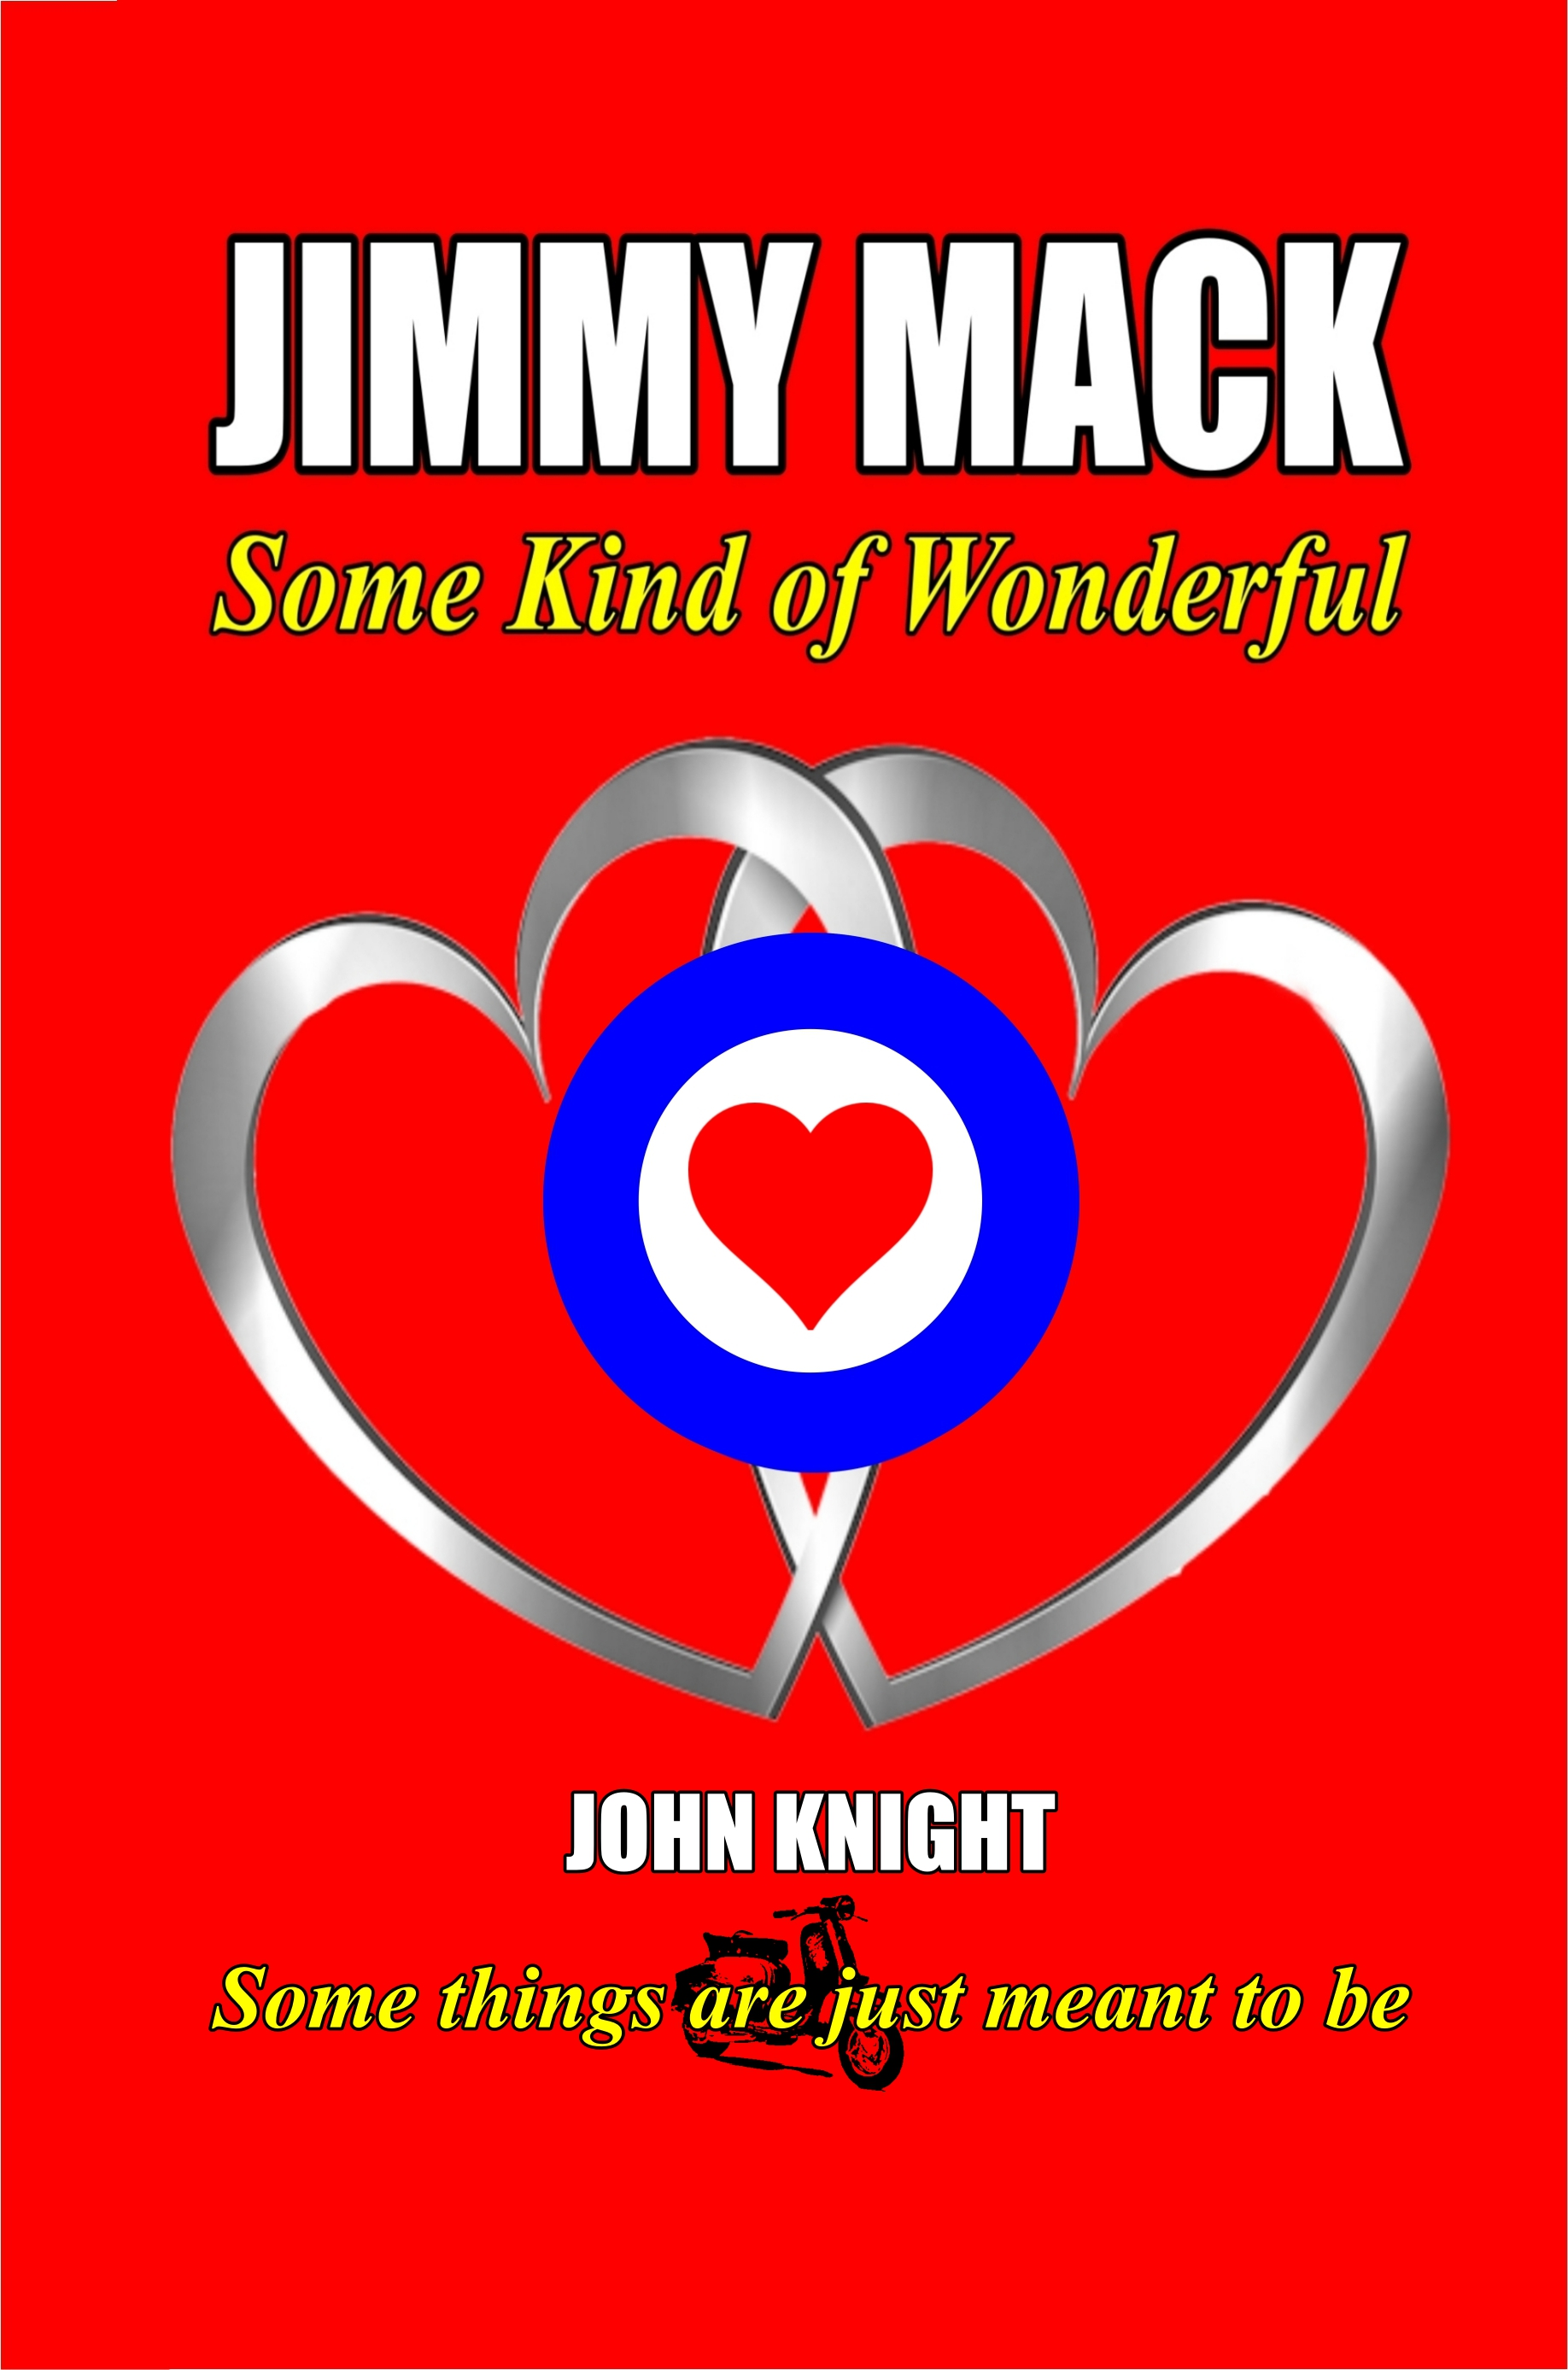 Jimmy Mack – Some Kind of Wonderful - 1960s Mods, Mod novel by John Knight.